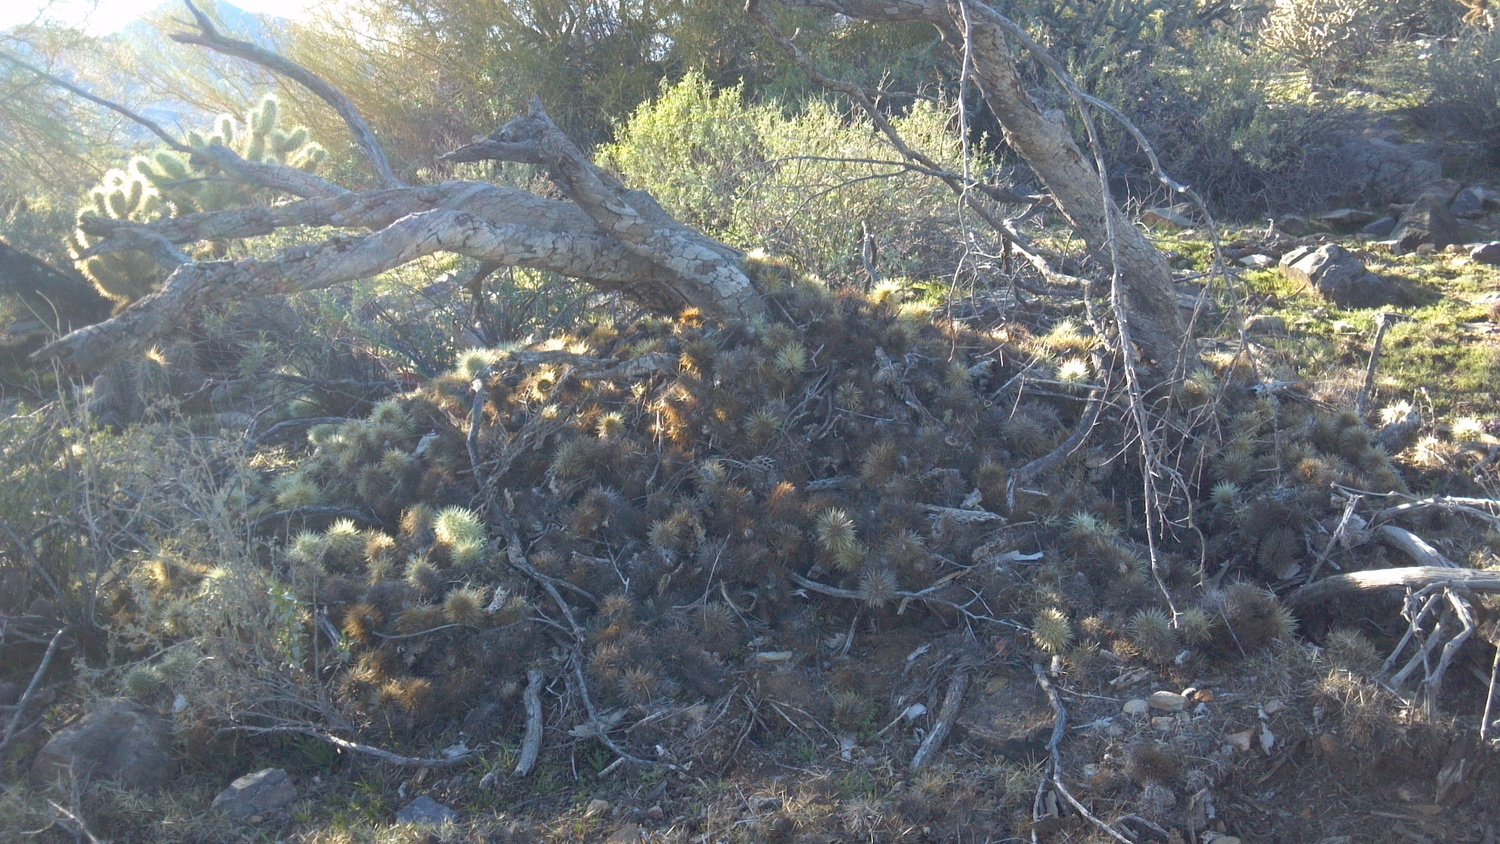 Pack rats have quite an interesting strategy when it comes to home building. Just pile up a bunch of cholla and assorted thorny vegetation!